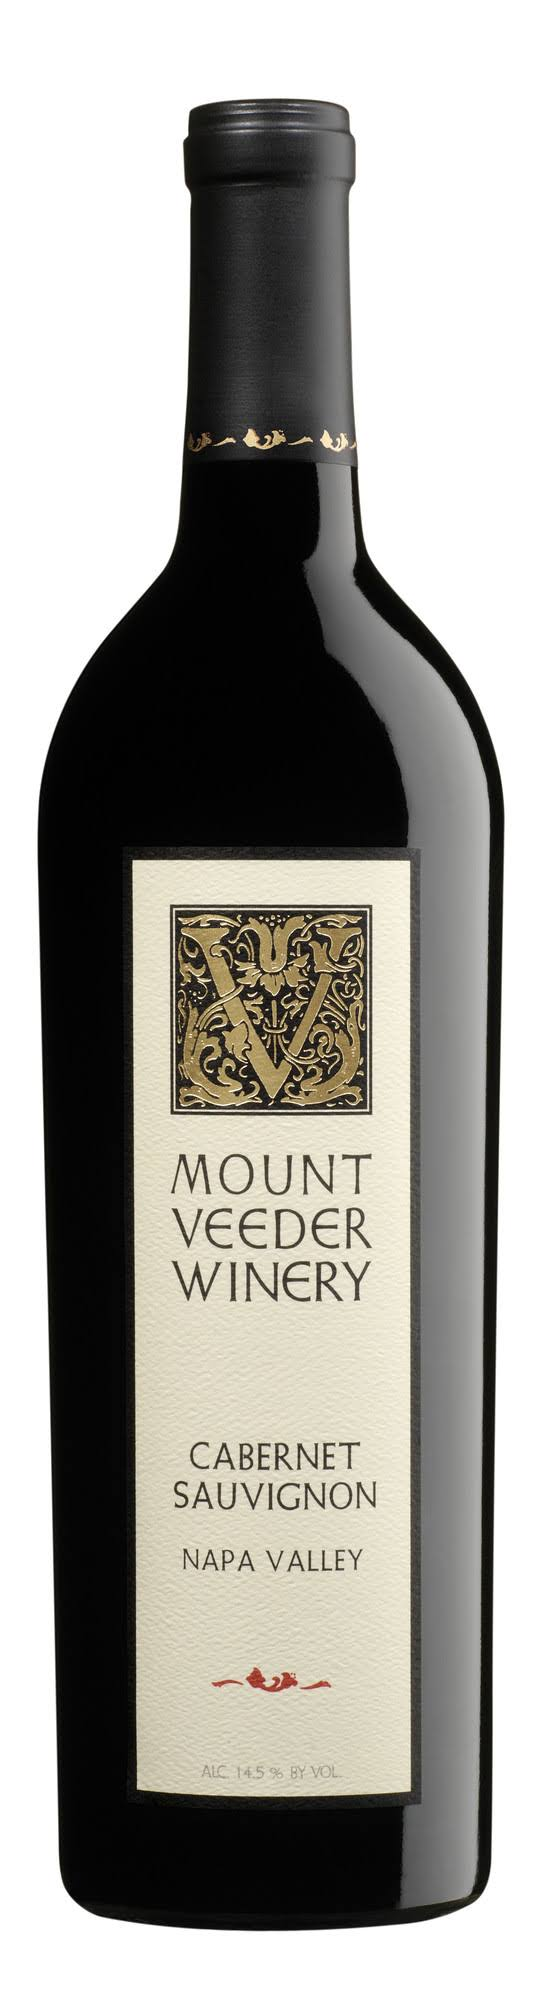 Mount Veeder Winery Napa Valley Cabernet Sauvignon Wine - 750ml